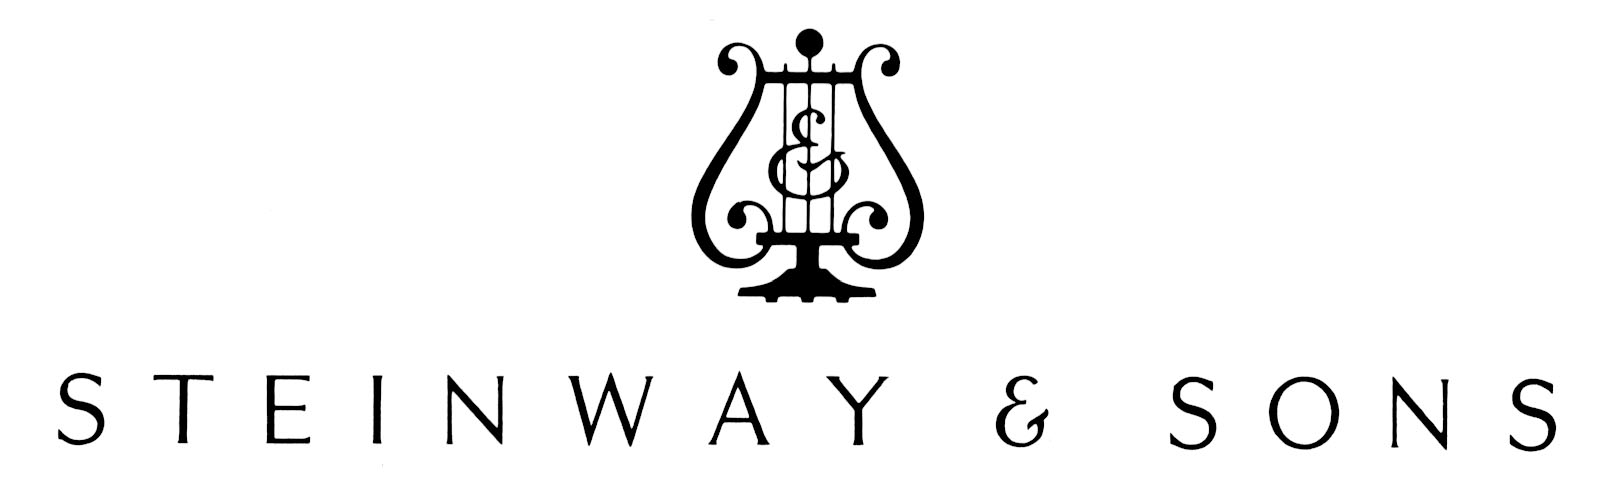 steinway-and-sons.jpg